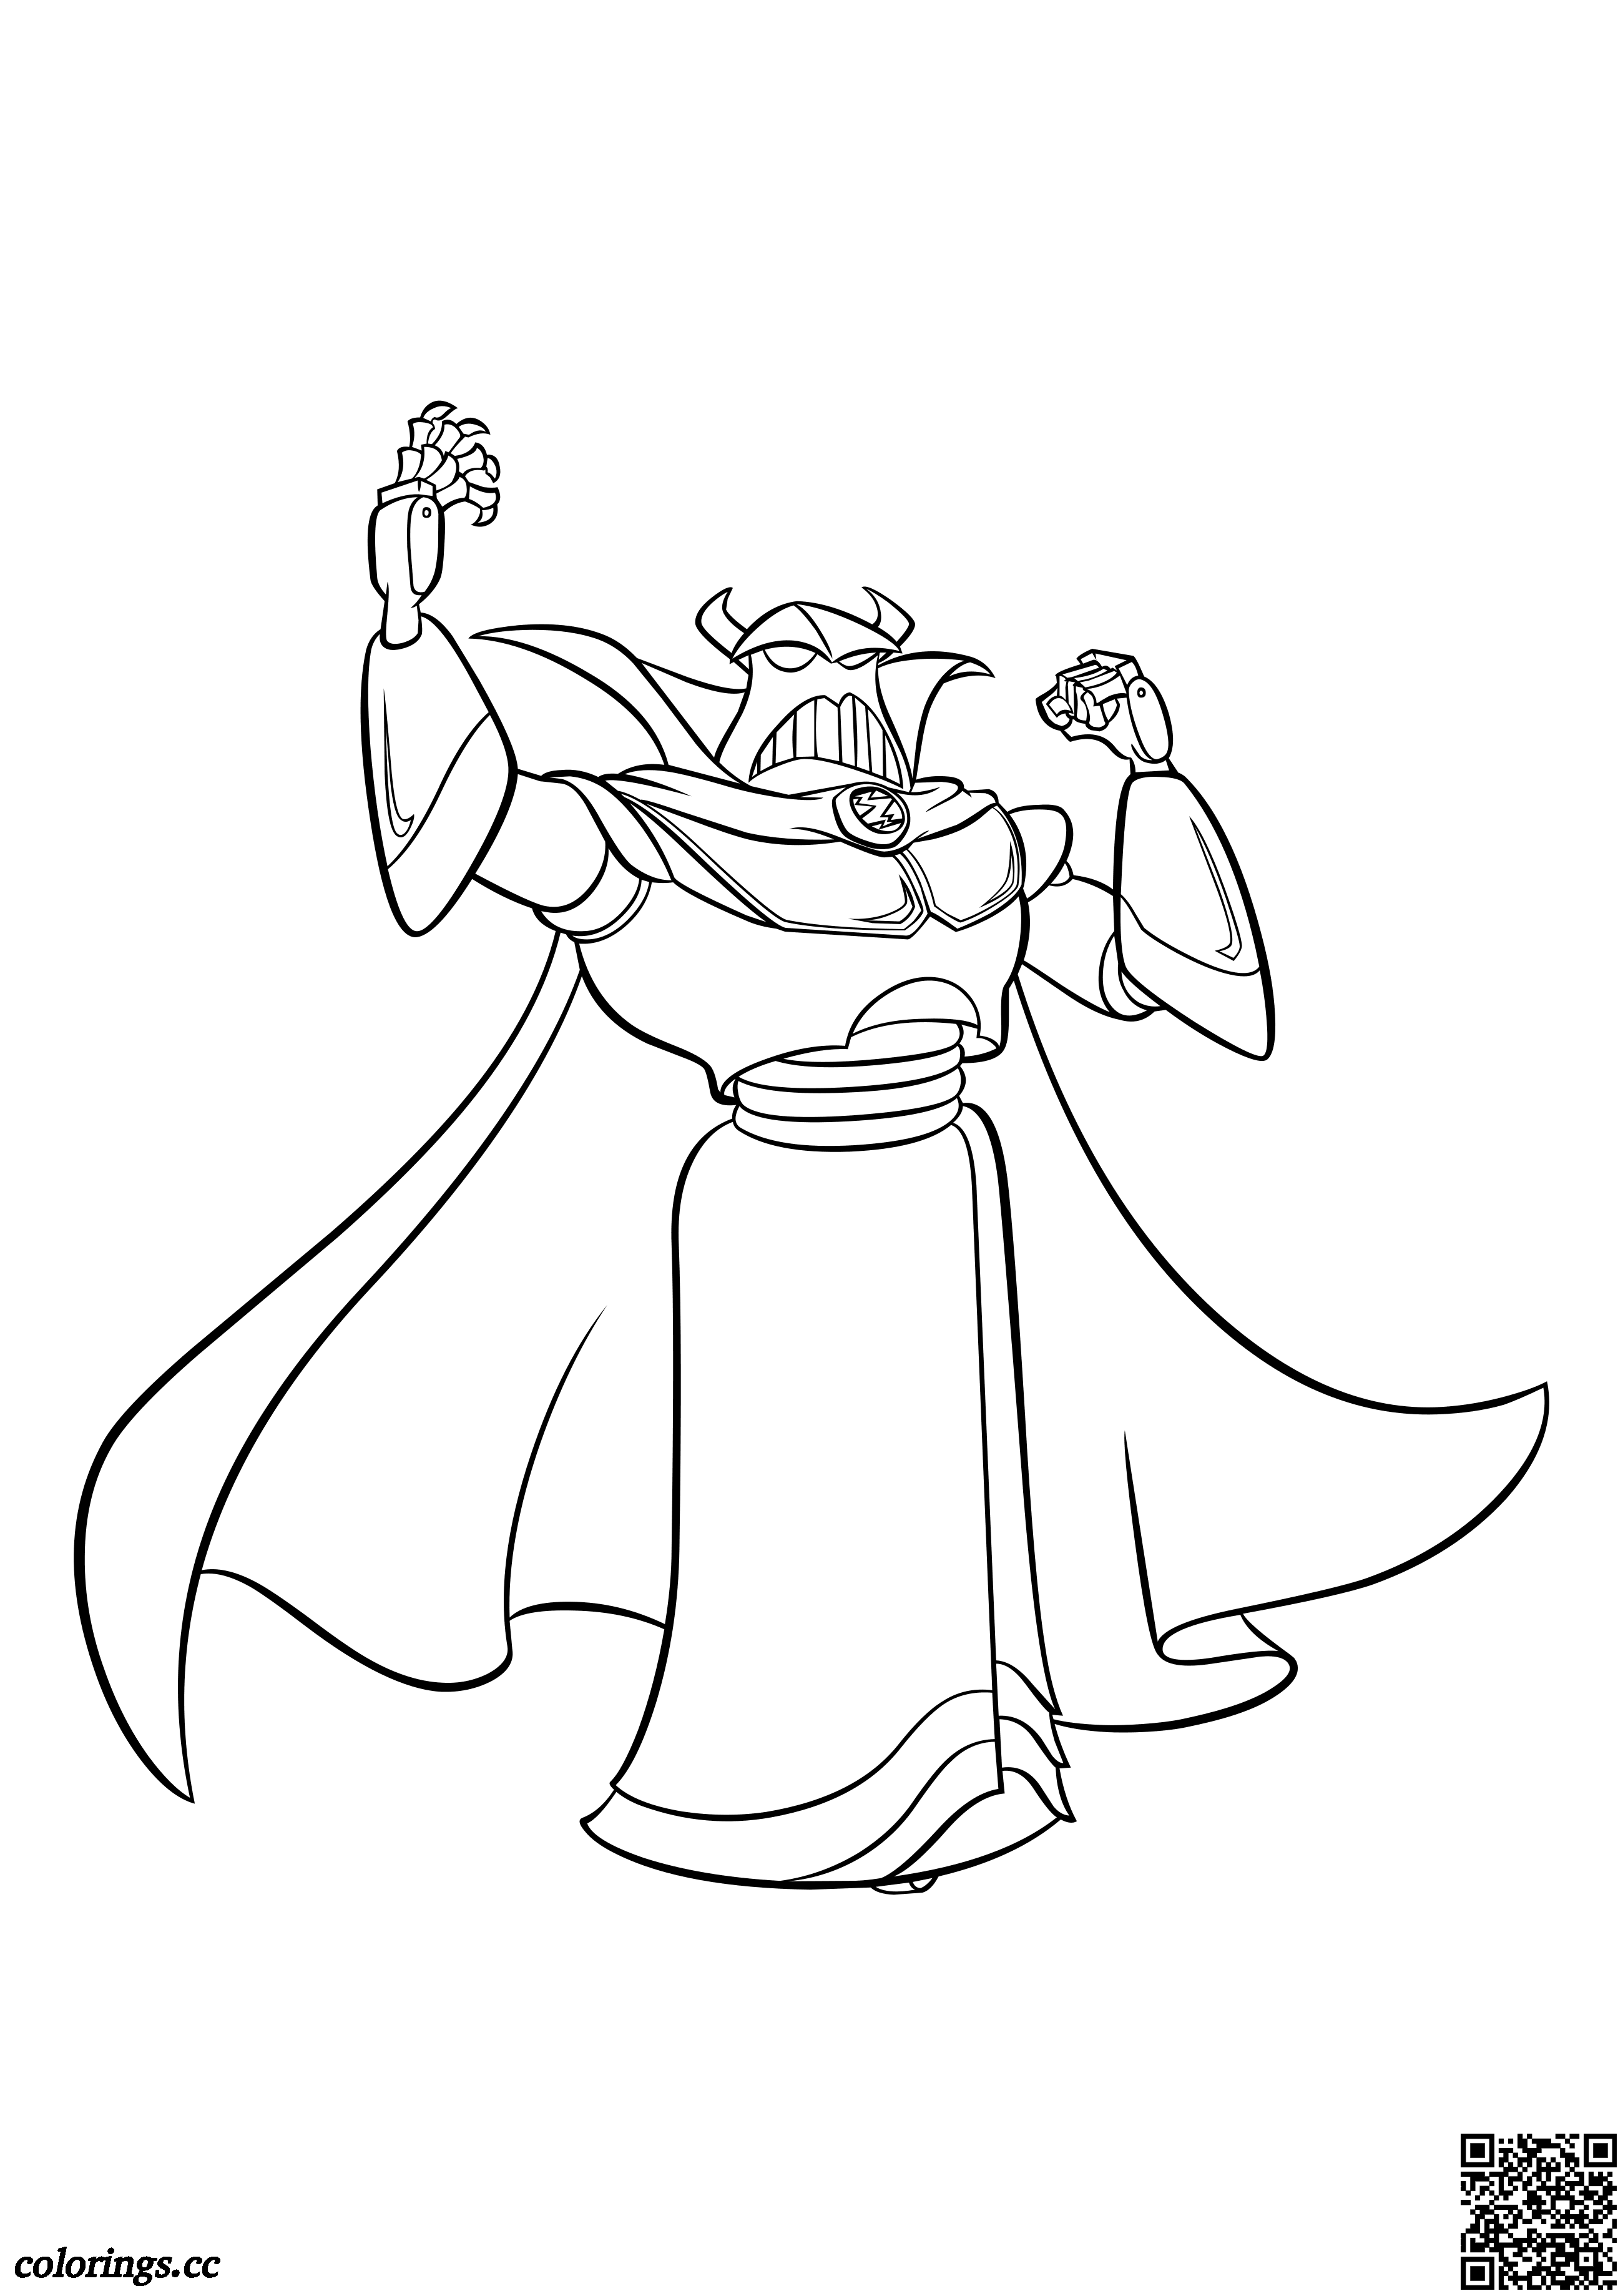 Emperor Zurg coloring pages, The history of toys coloring pages ...